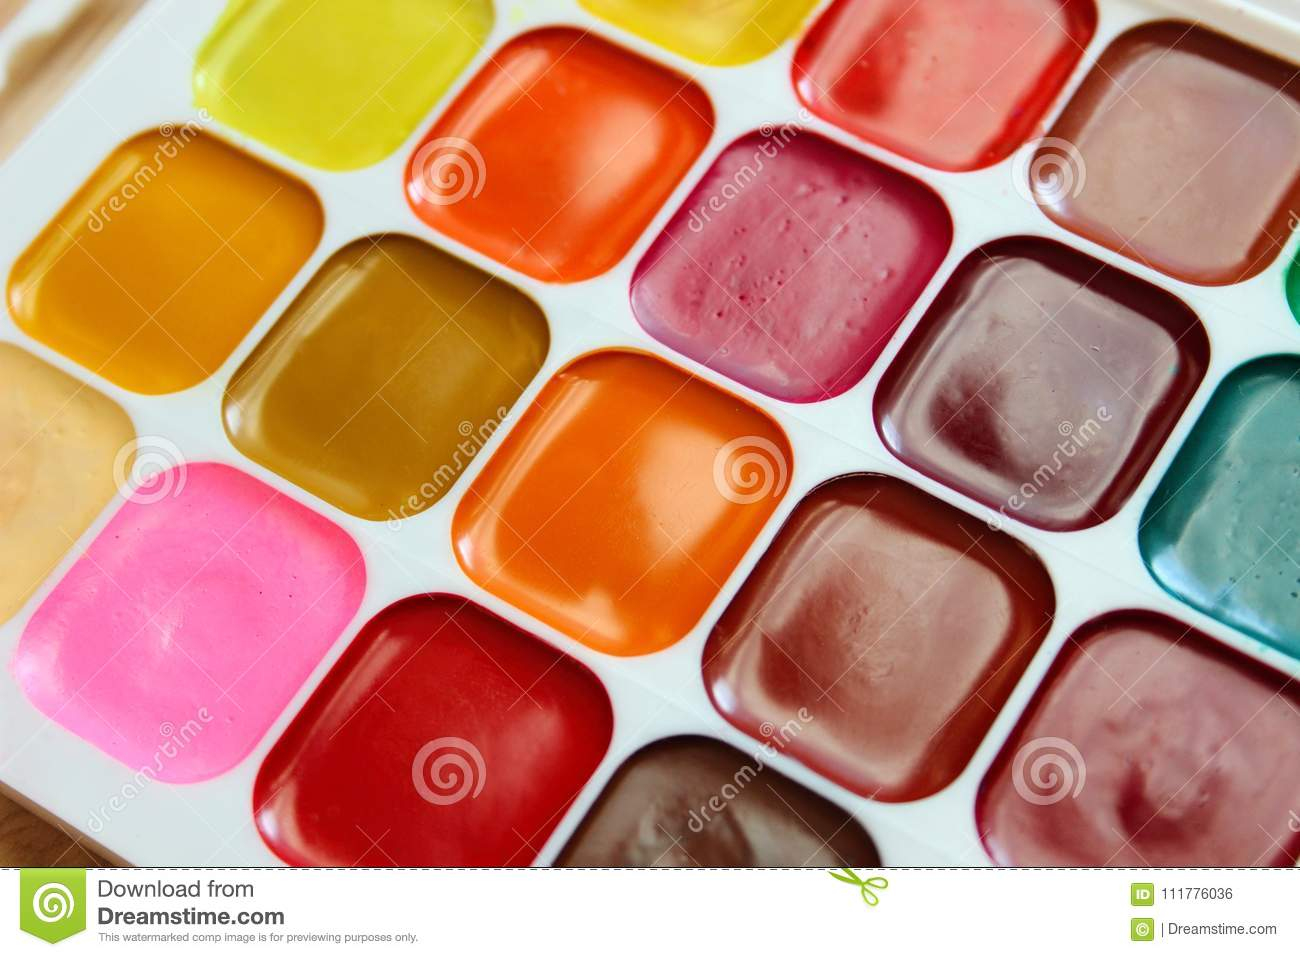 Water colors of different colors